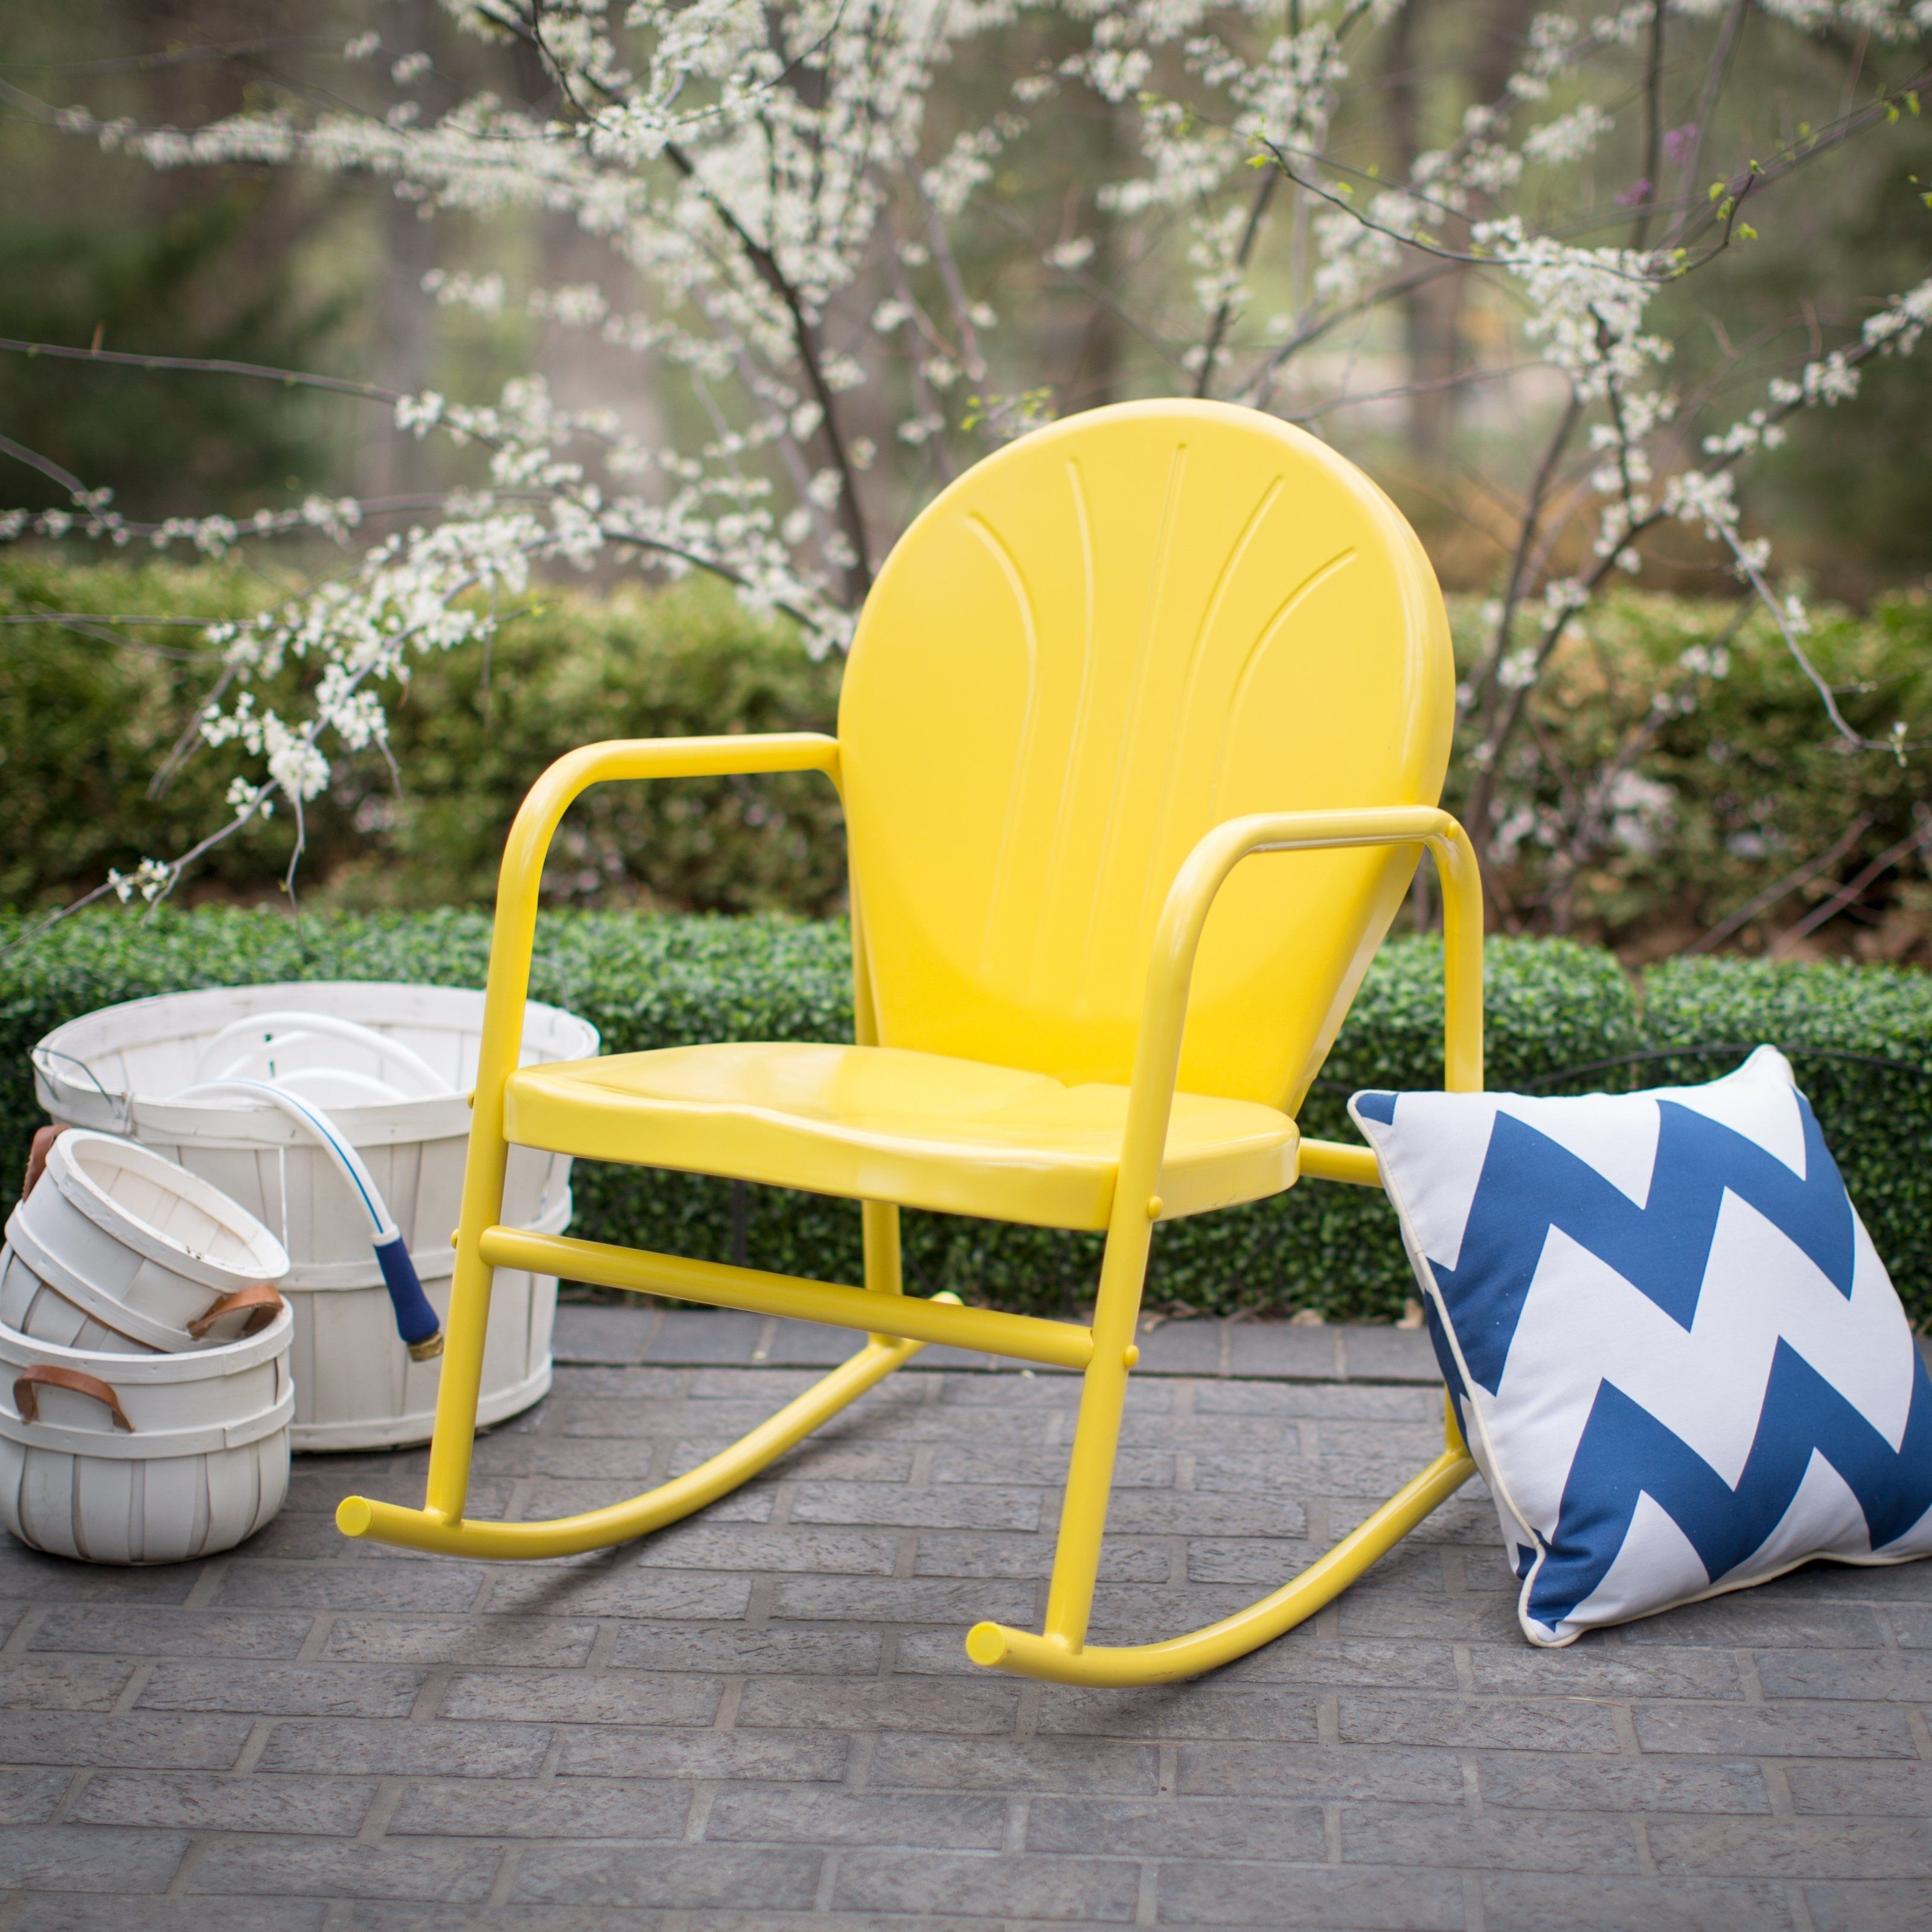 Current Coral Coast Vintage Retro Steel Single Rocker – Outdoor Rocking With Regard To Vintage Outdoor Rocking Chairs (View 16 of 20)